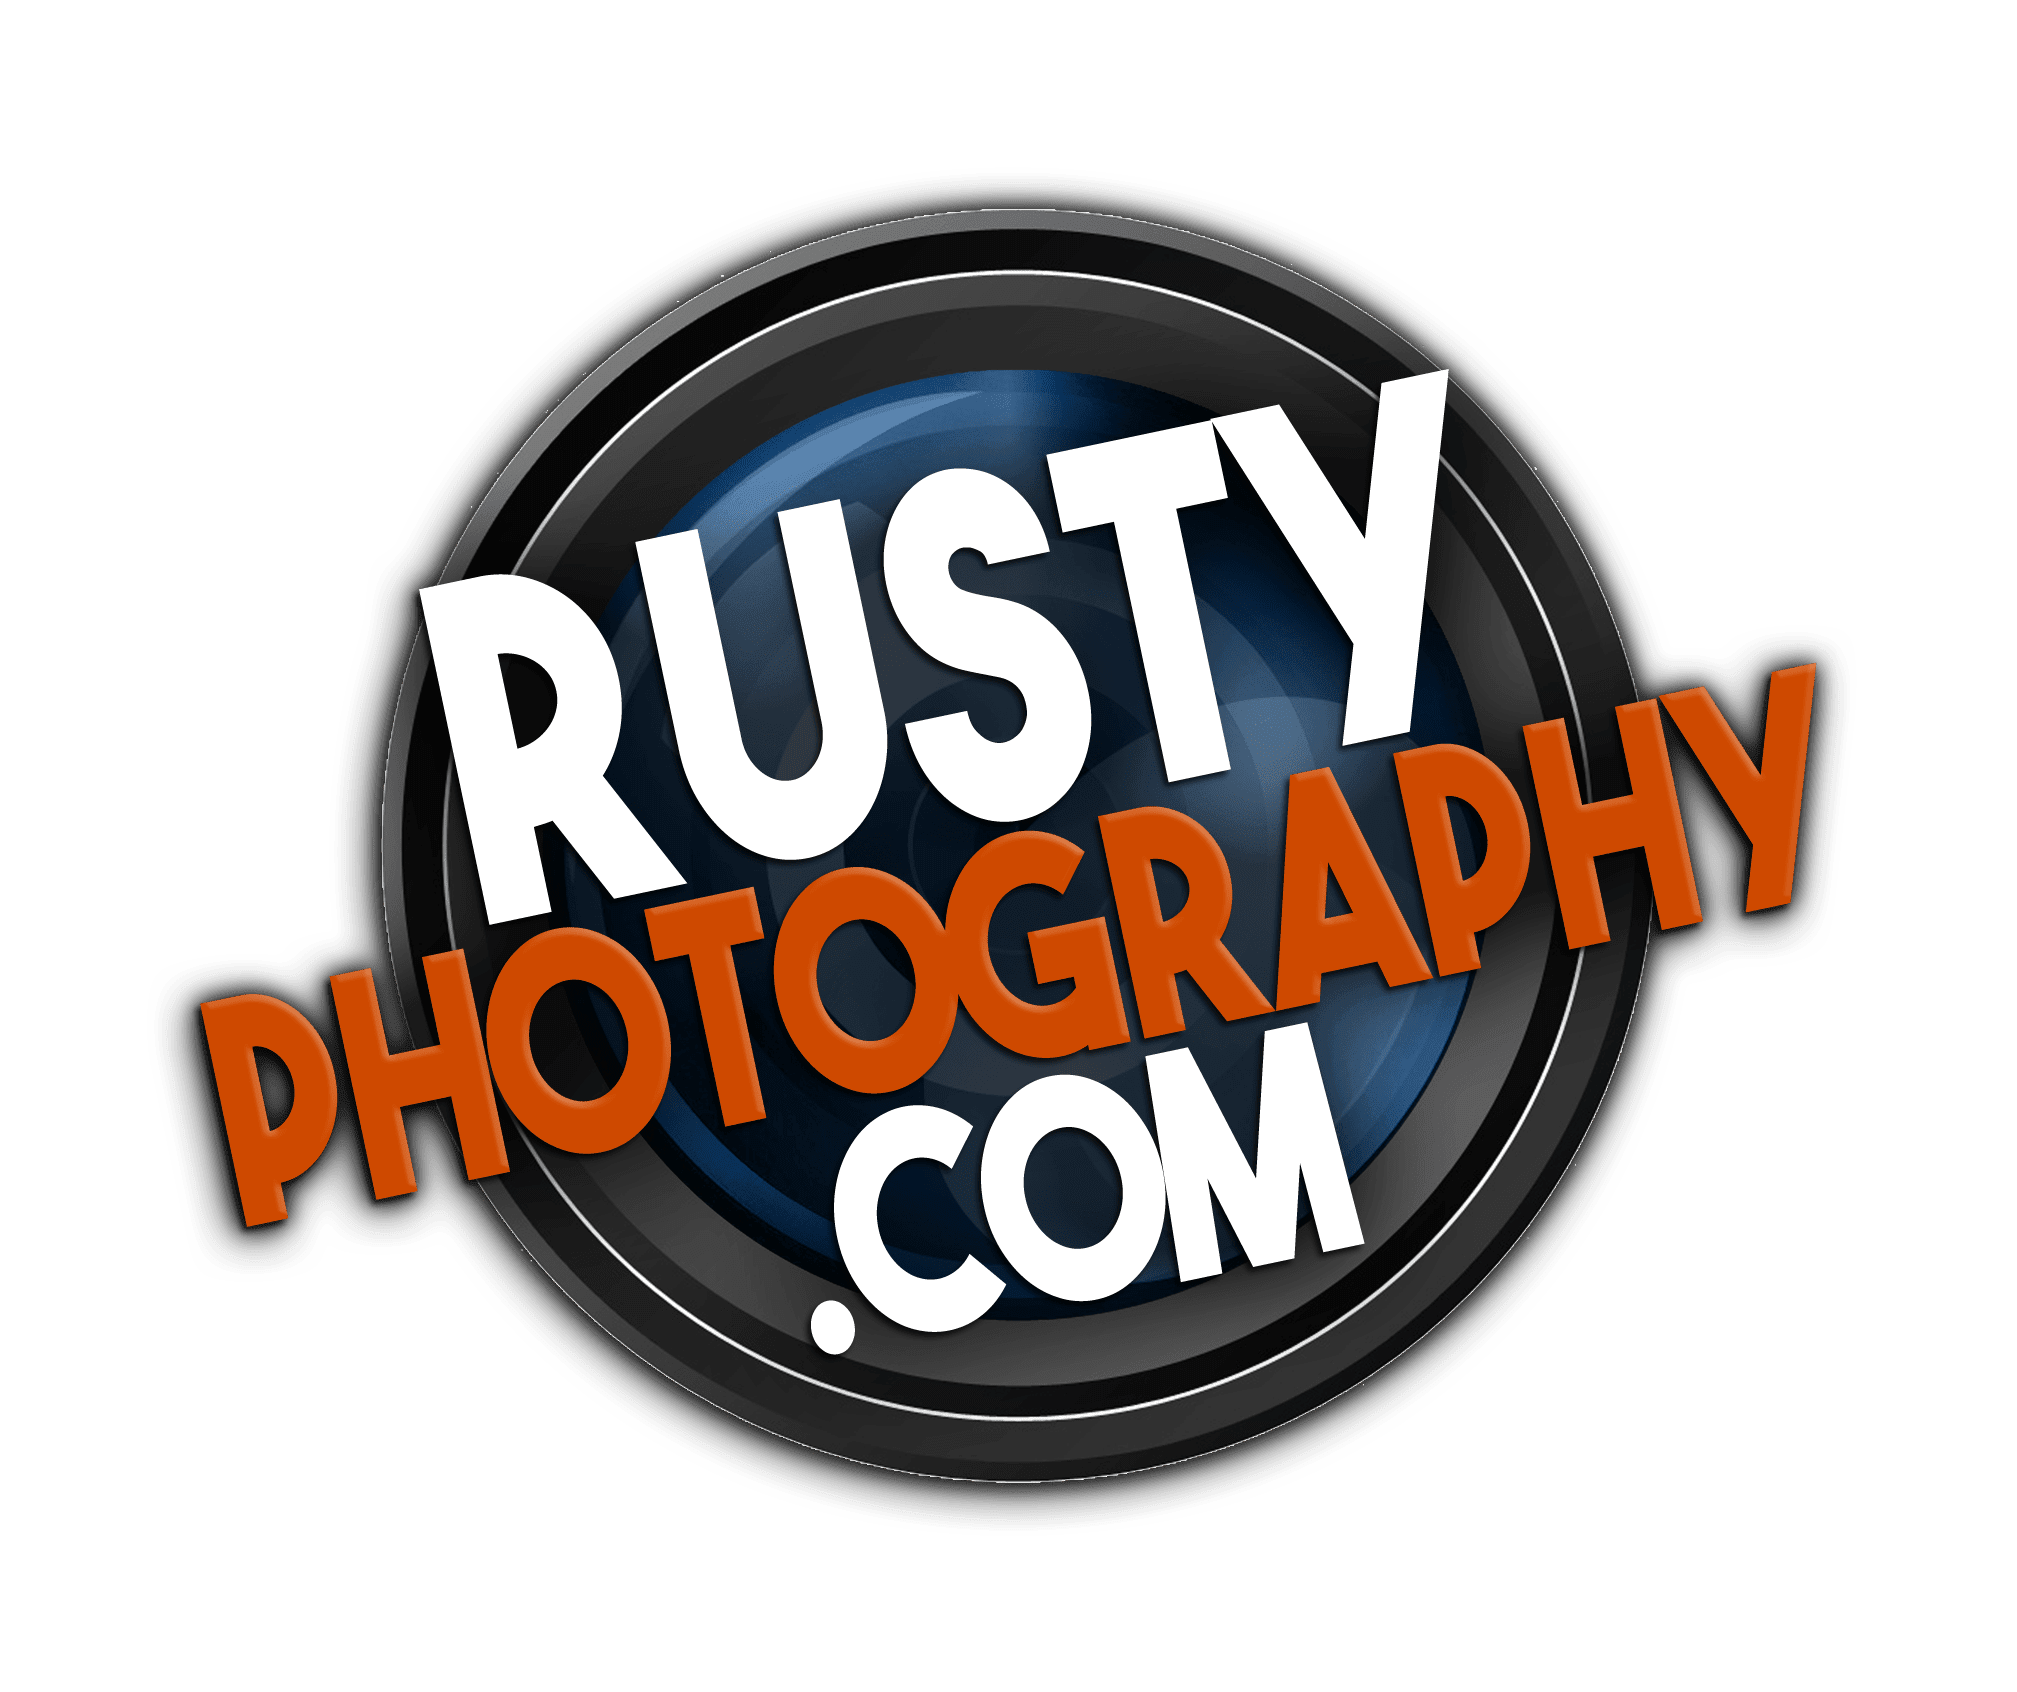 Rusty Photography